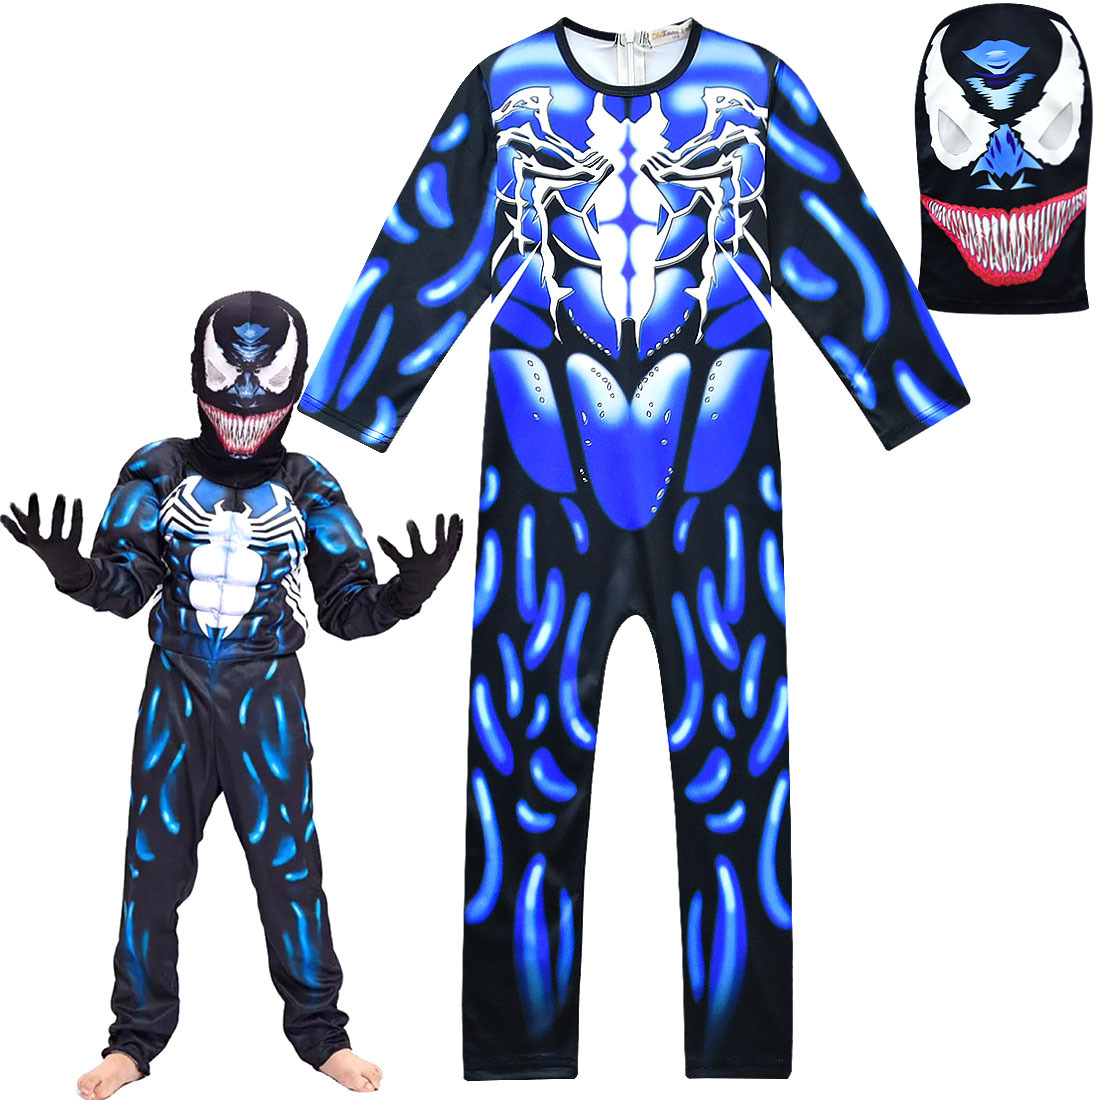 Boys Venom Halloween Cosplay Costume Avengers 4 Children's Funny Party Carnival Clothing Spider Man Halloween Costume For Kids